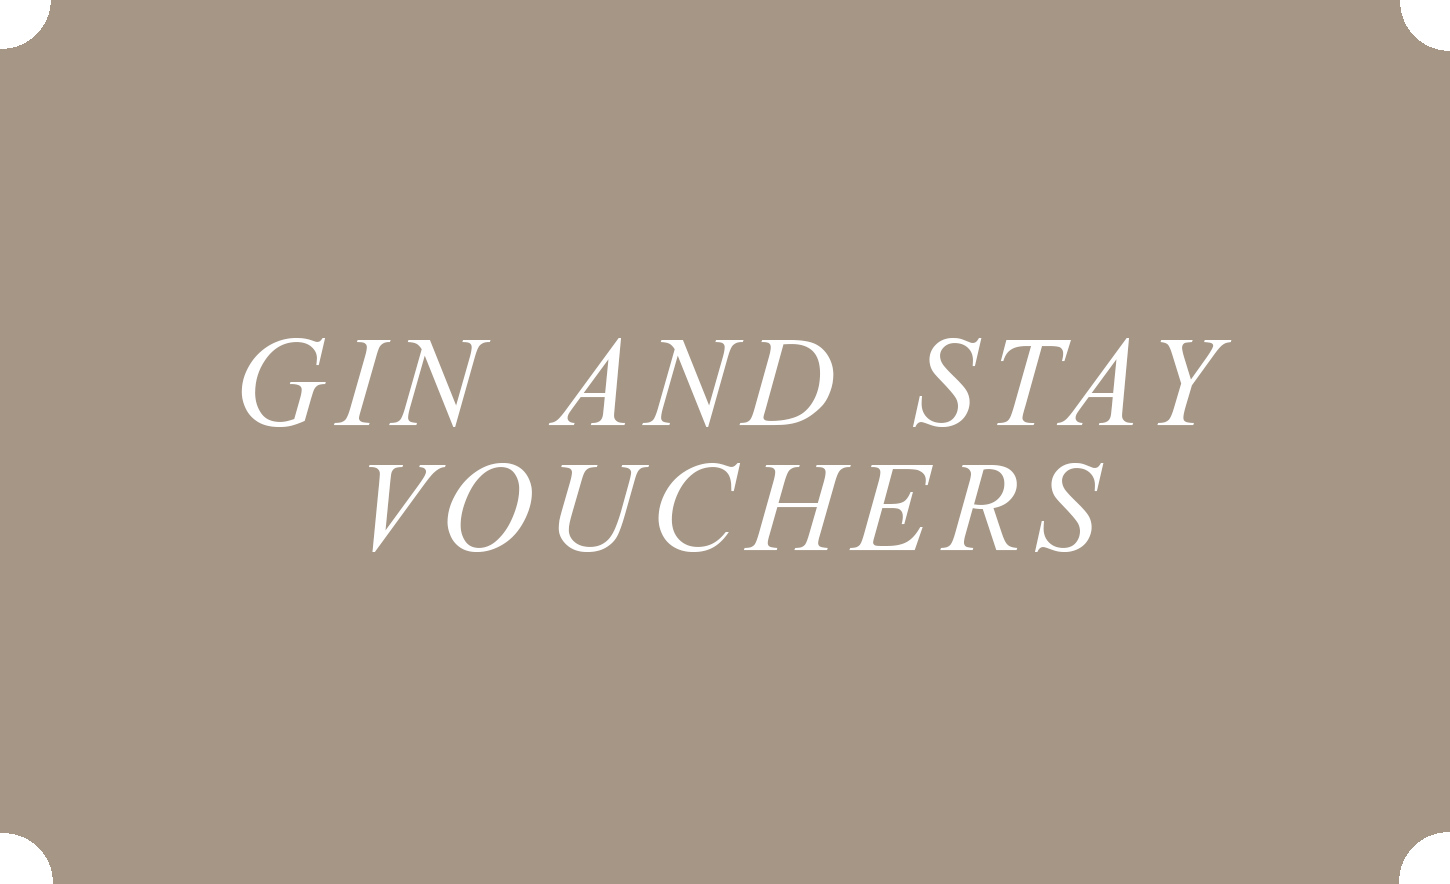 Gin and Stay Vouchers